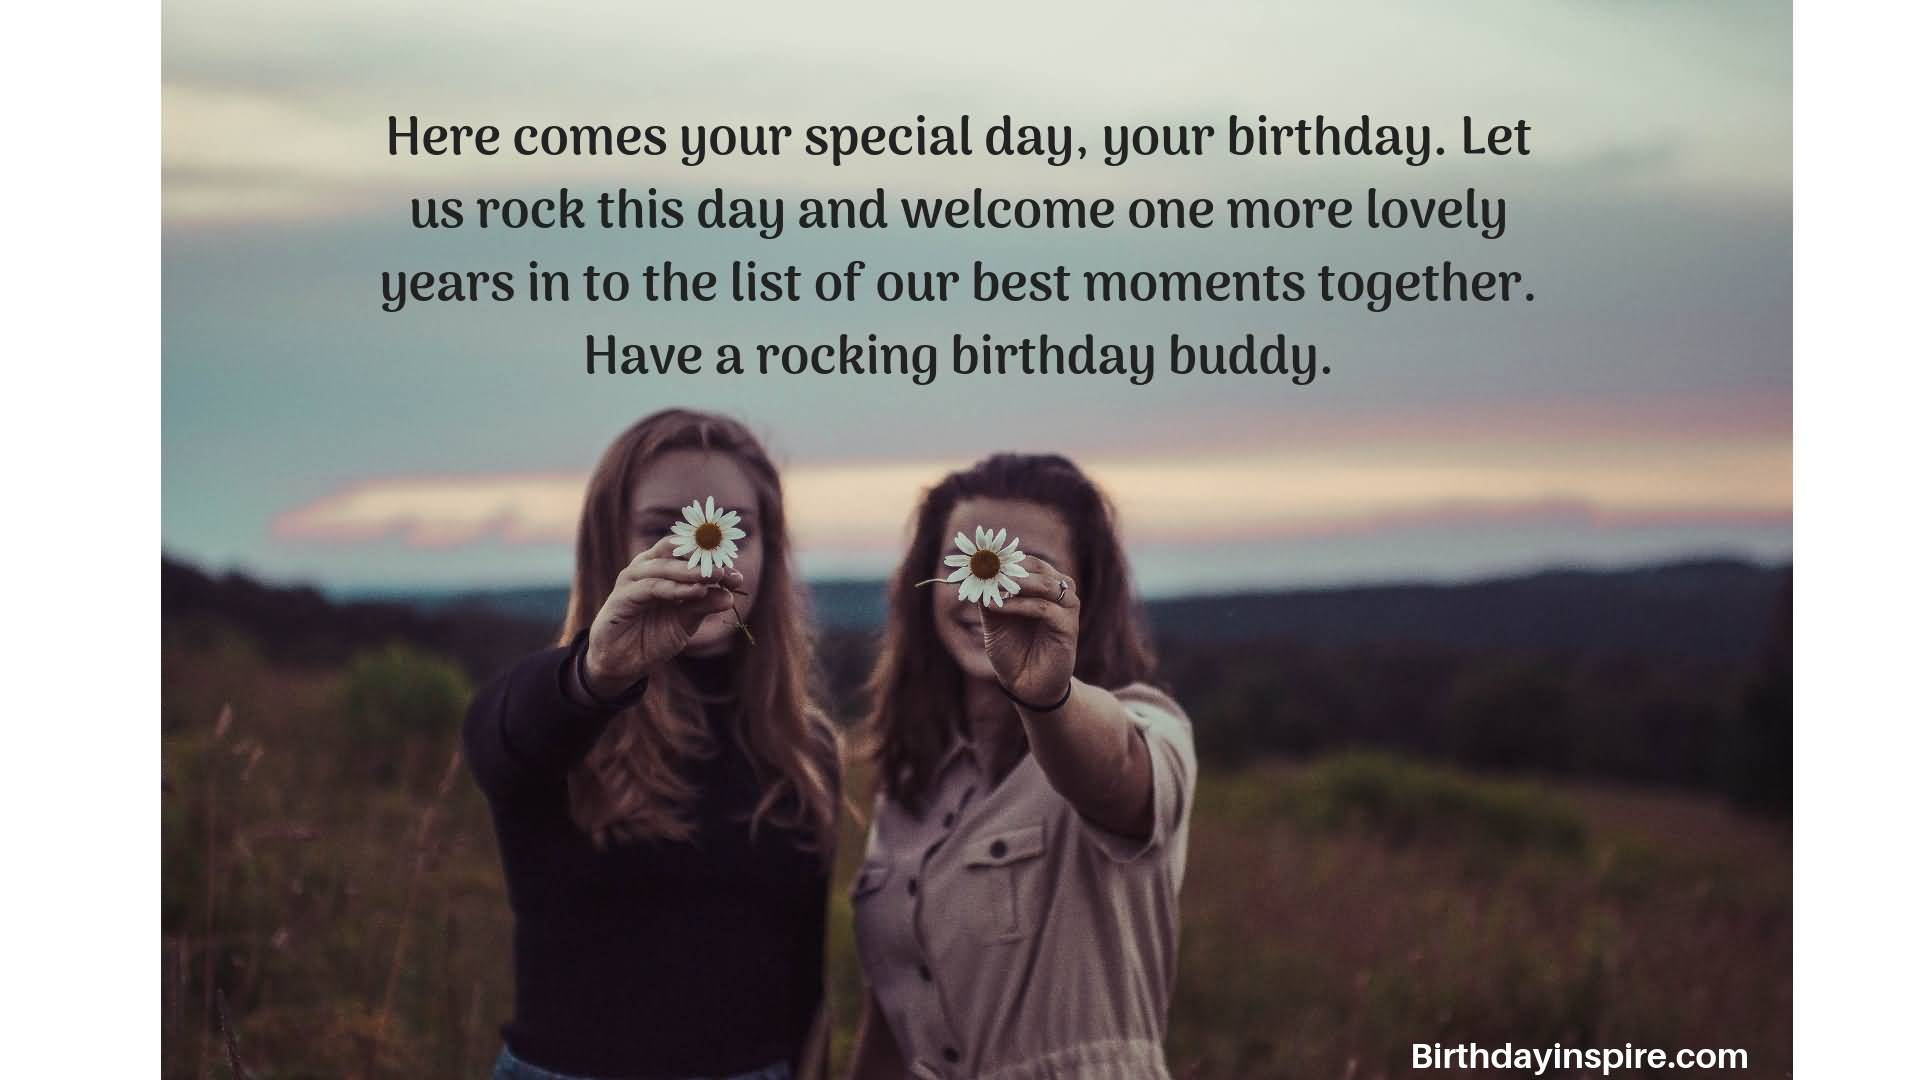 Here comes your special day, your Happy Birthday Best buddy inspiring wishes messages for you